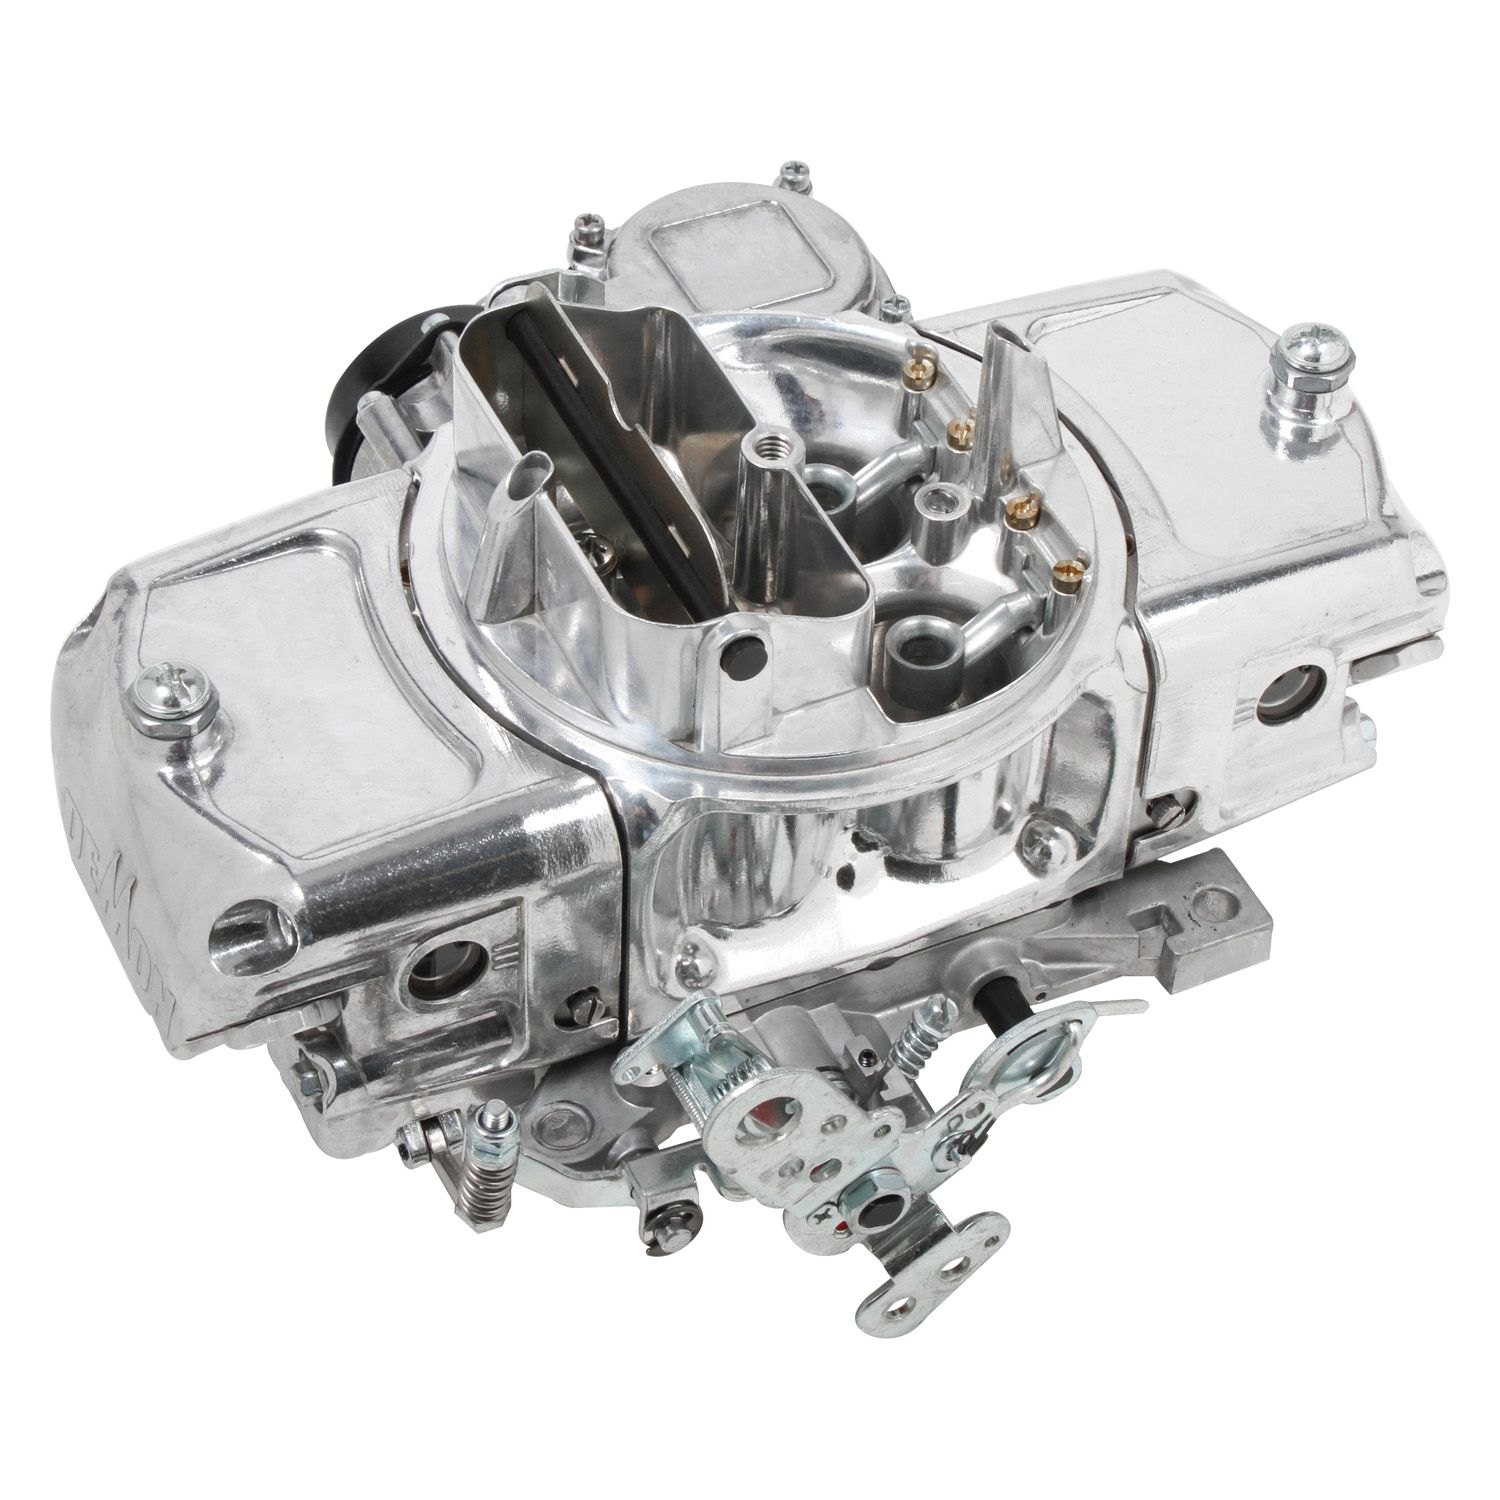 demon carb vacuum hookup 850 demon carb help the issue with a carb that big on a small engine is you just won't get enough vacuum signal though the venturis to get decent throttle response.